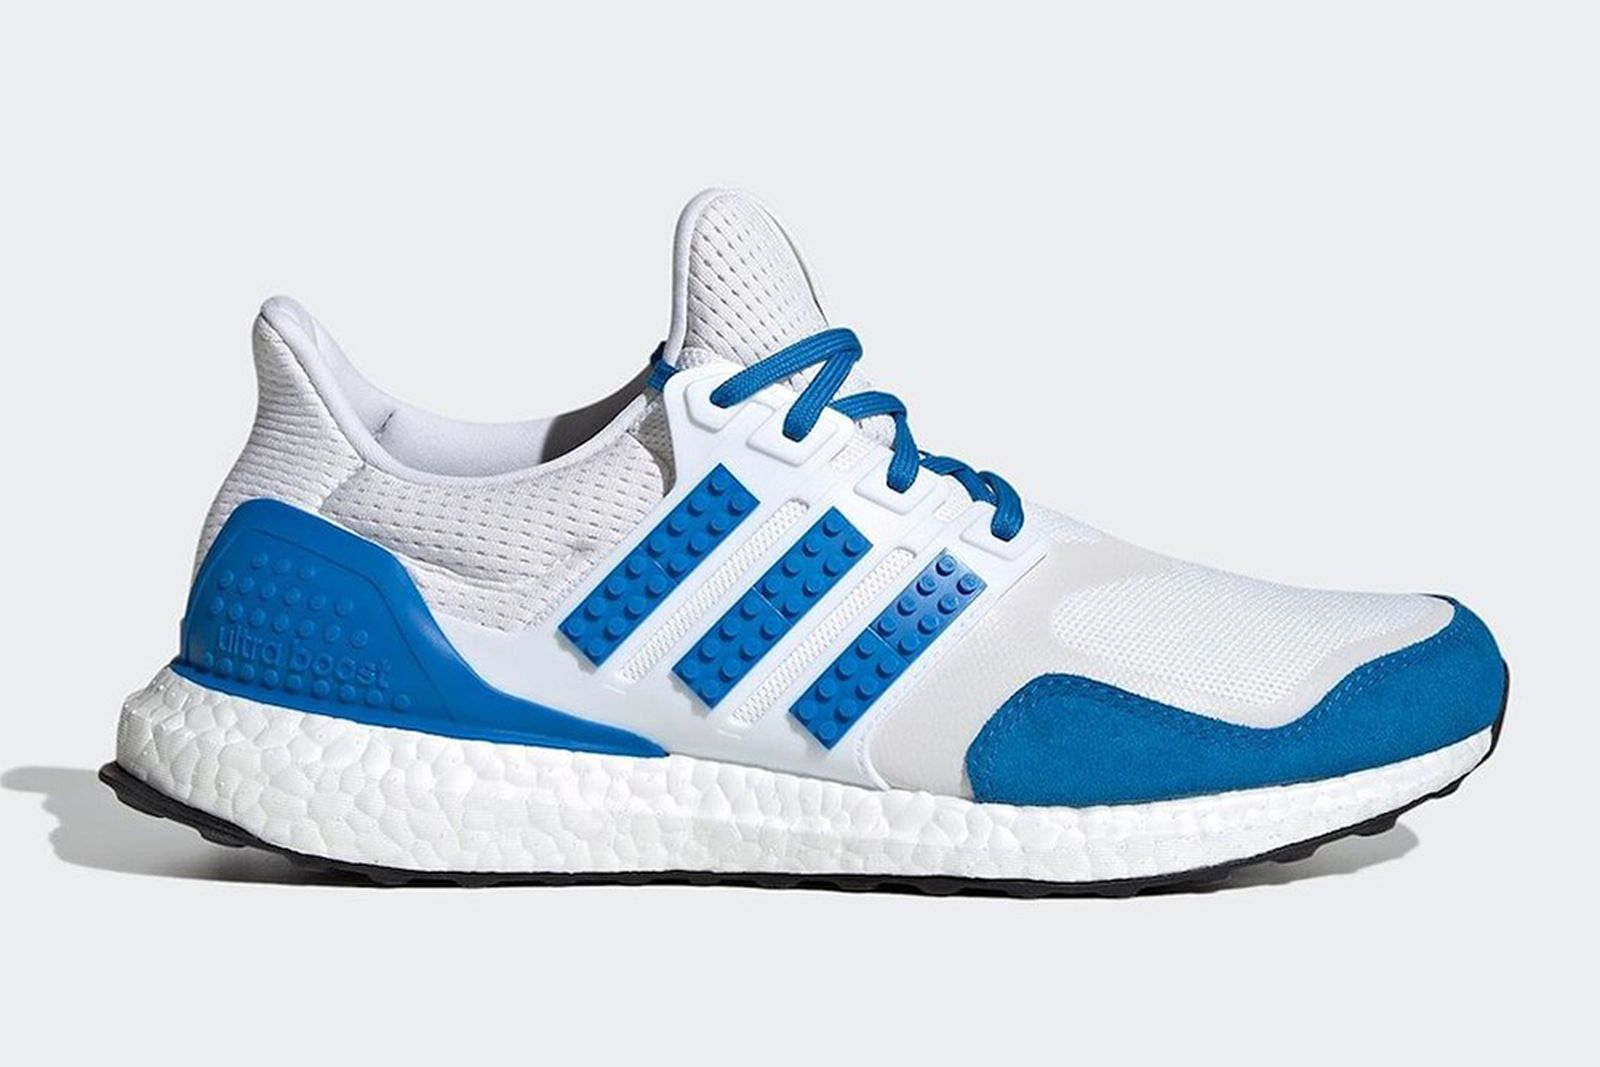 lego-adidas-ultraboost-color-pack-release-date-price-05